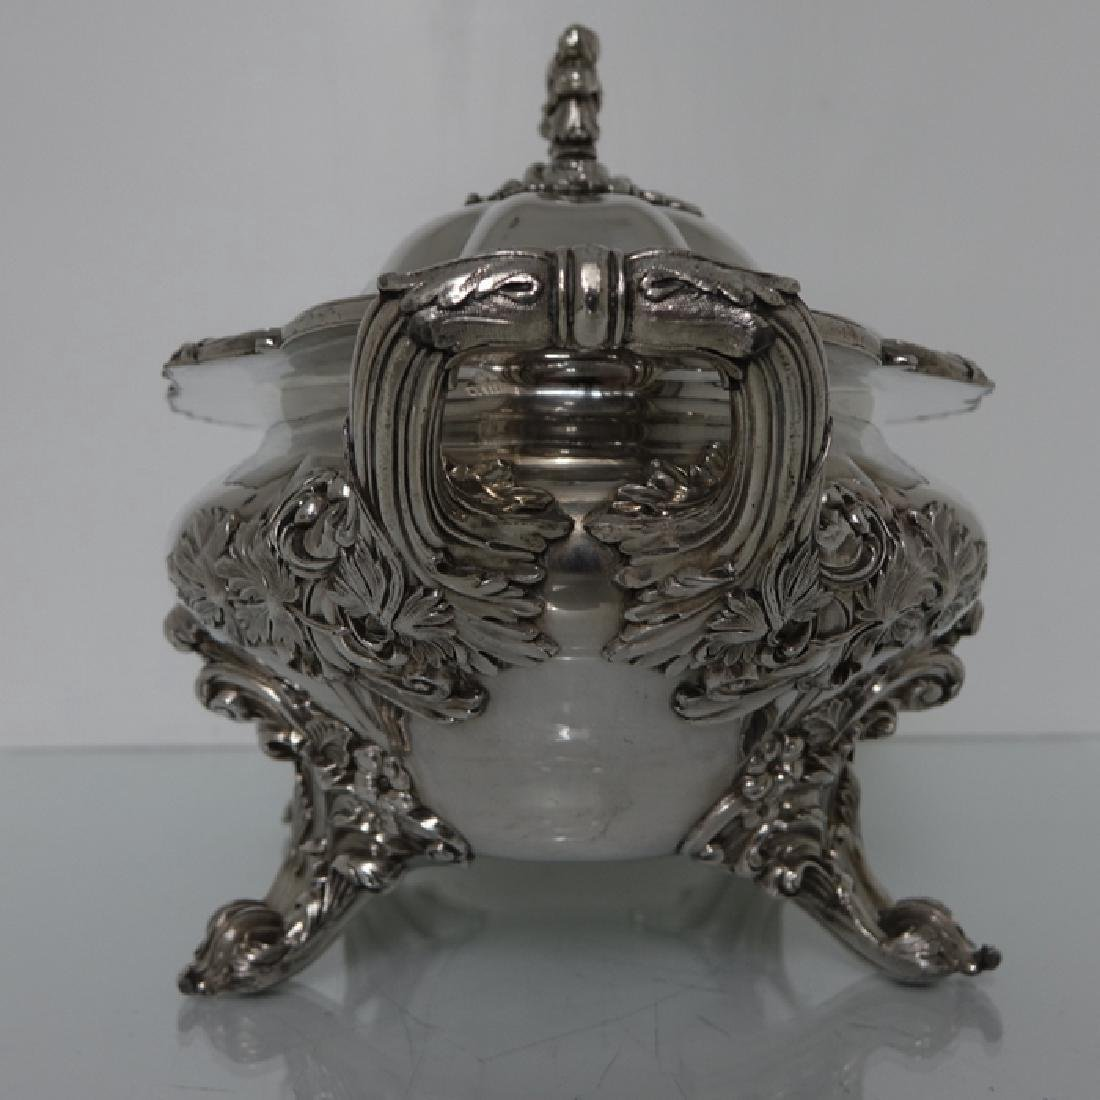 Antique William IV Old Sheffield Silver Soup Tureen - 4